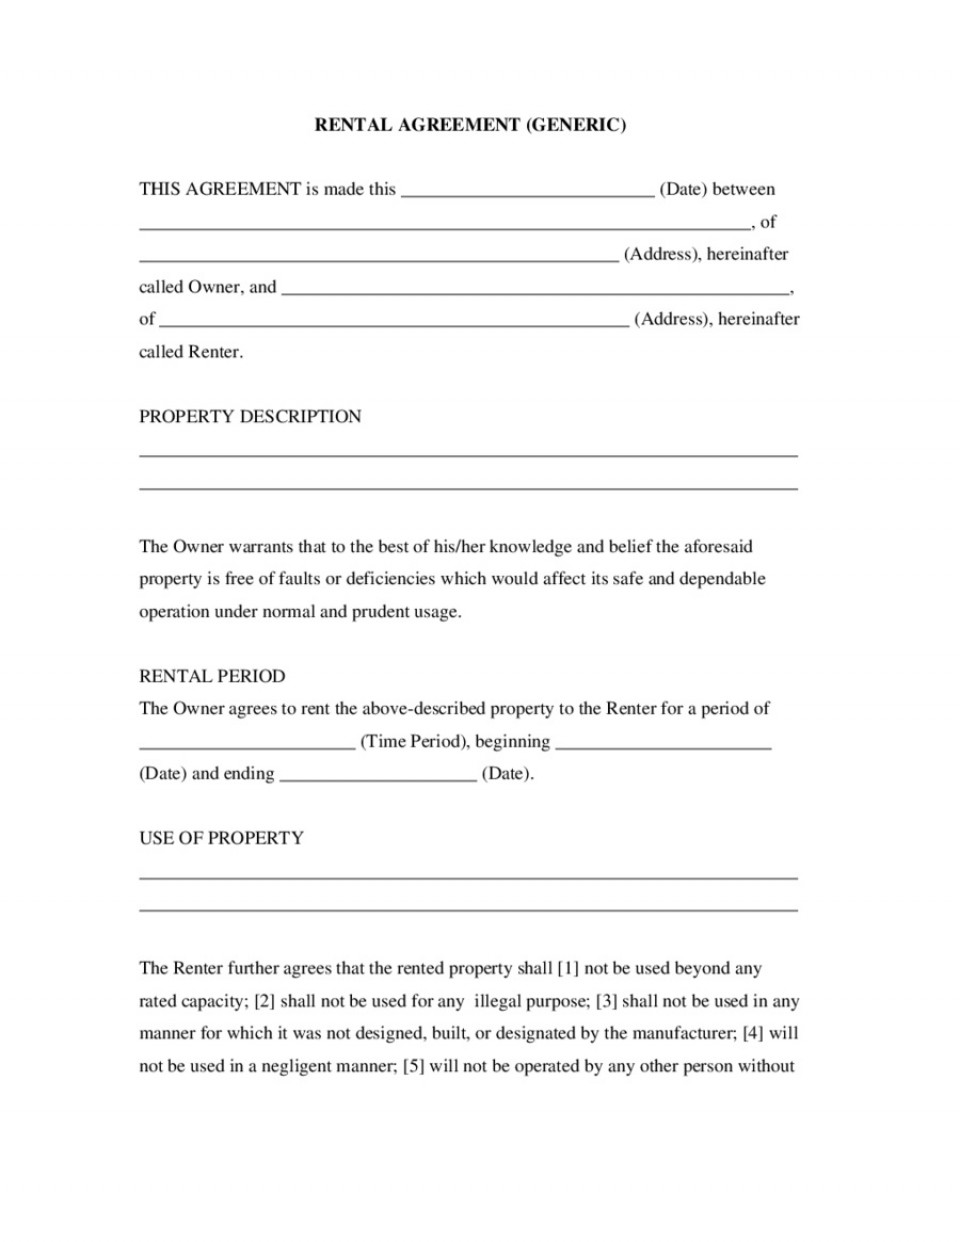 007 Awesome Basic Rental Agreement Template Sample  Simple Word Tenancy Free960